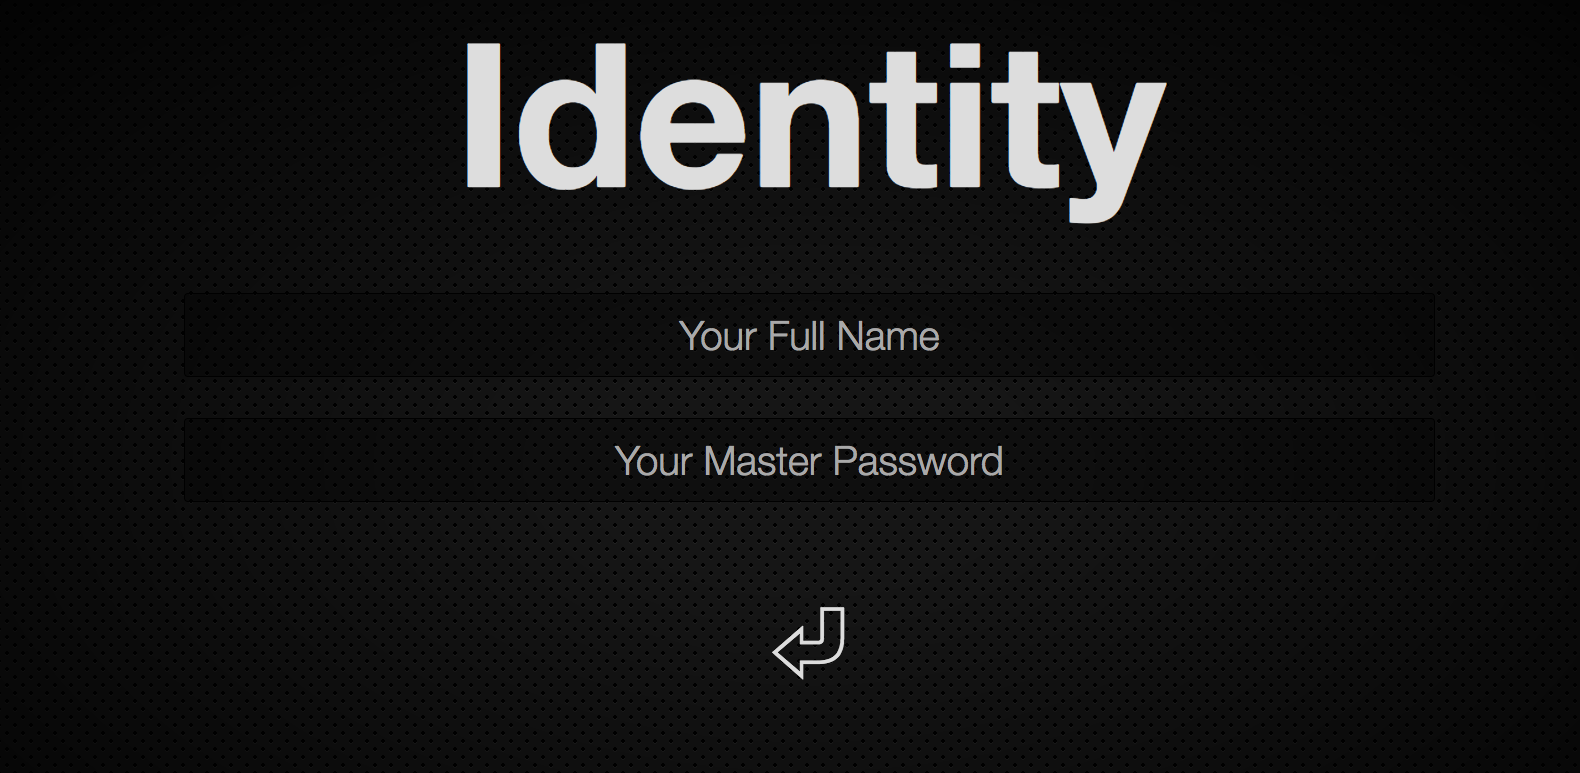 Master Password's interface